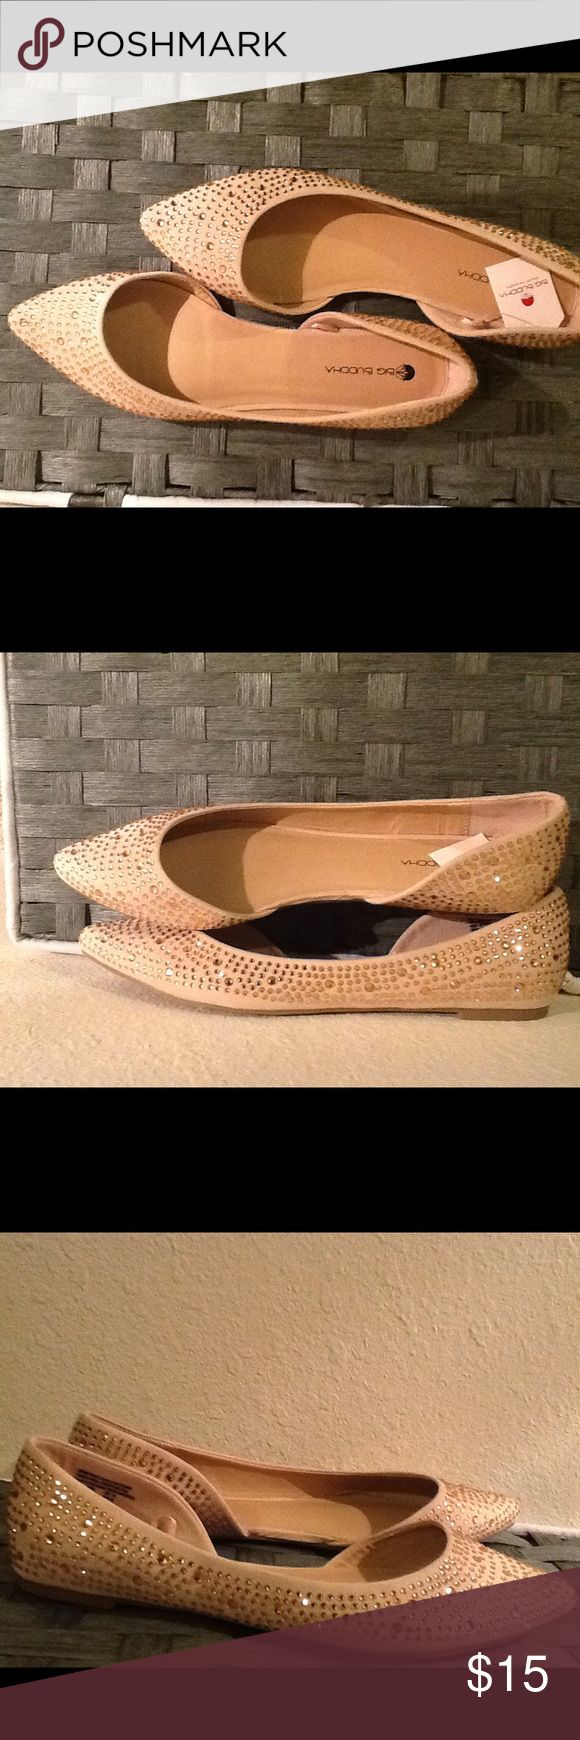 Big Buddha flats Pointy shoes, nude color with plastic rose gold stones. Size 10. All man made materials BIG BUDDHA Shoes Flats & Loafers